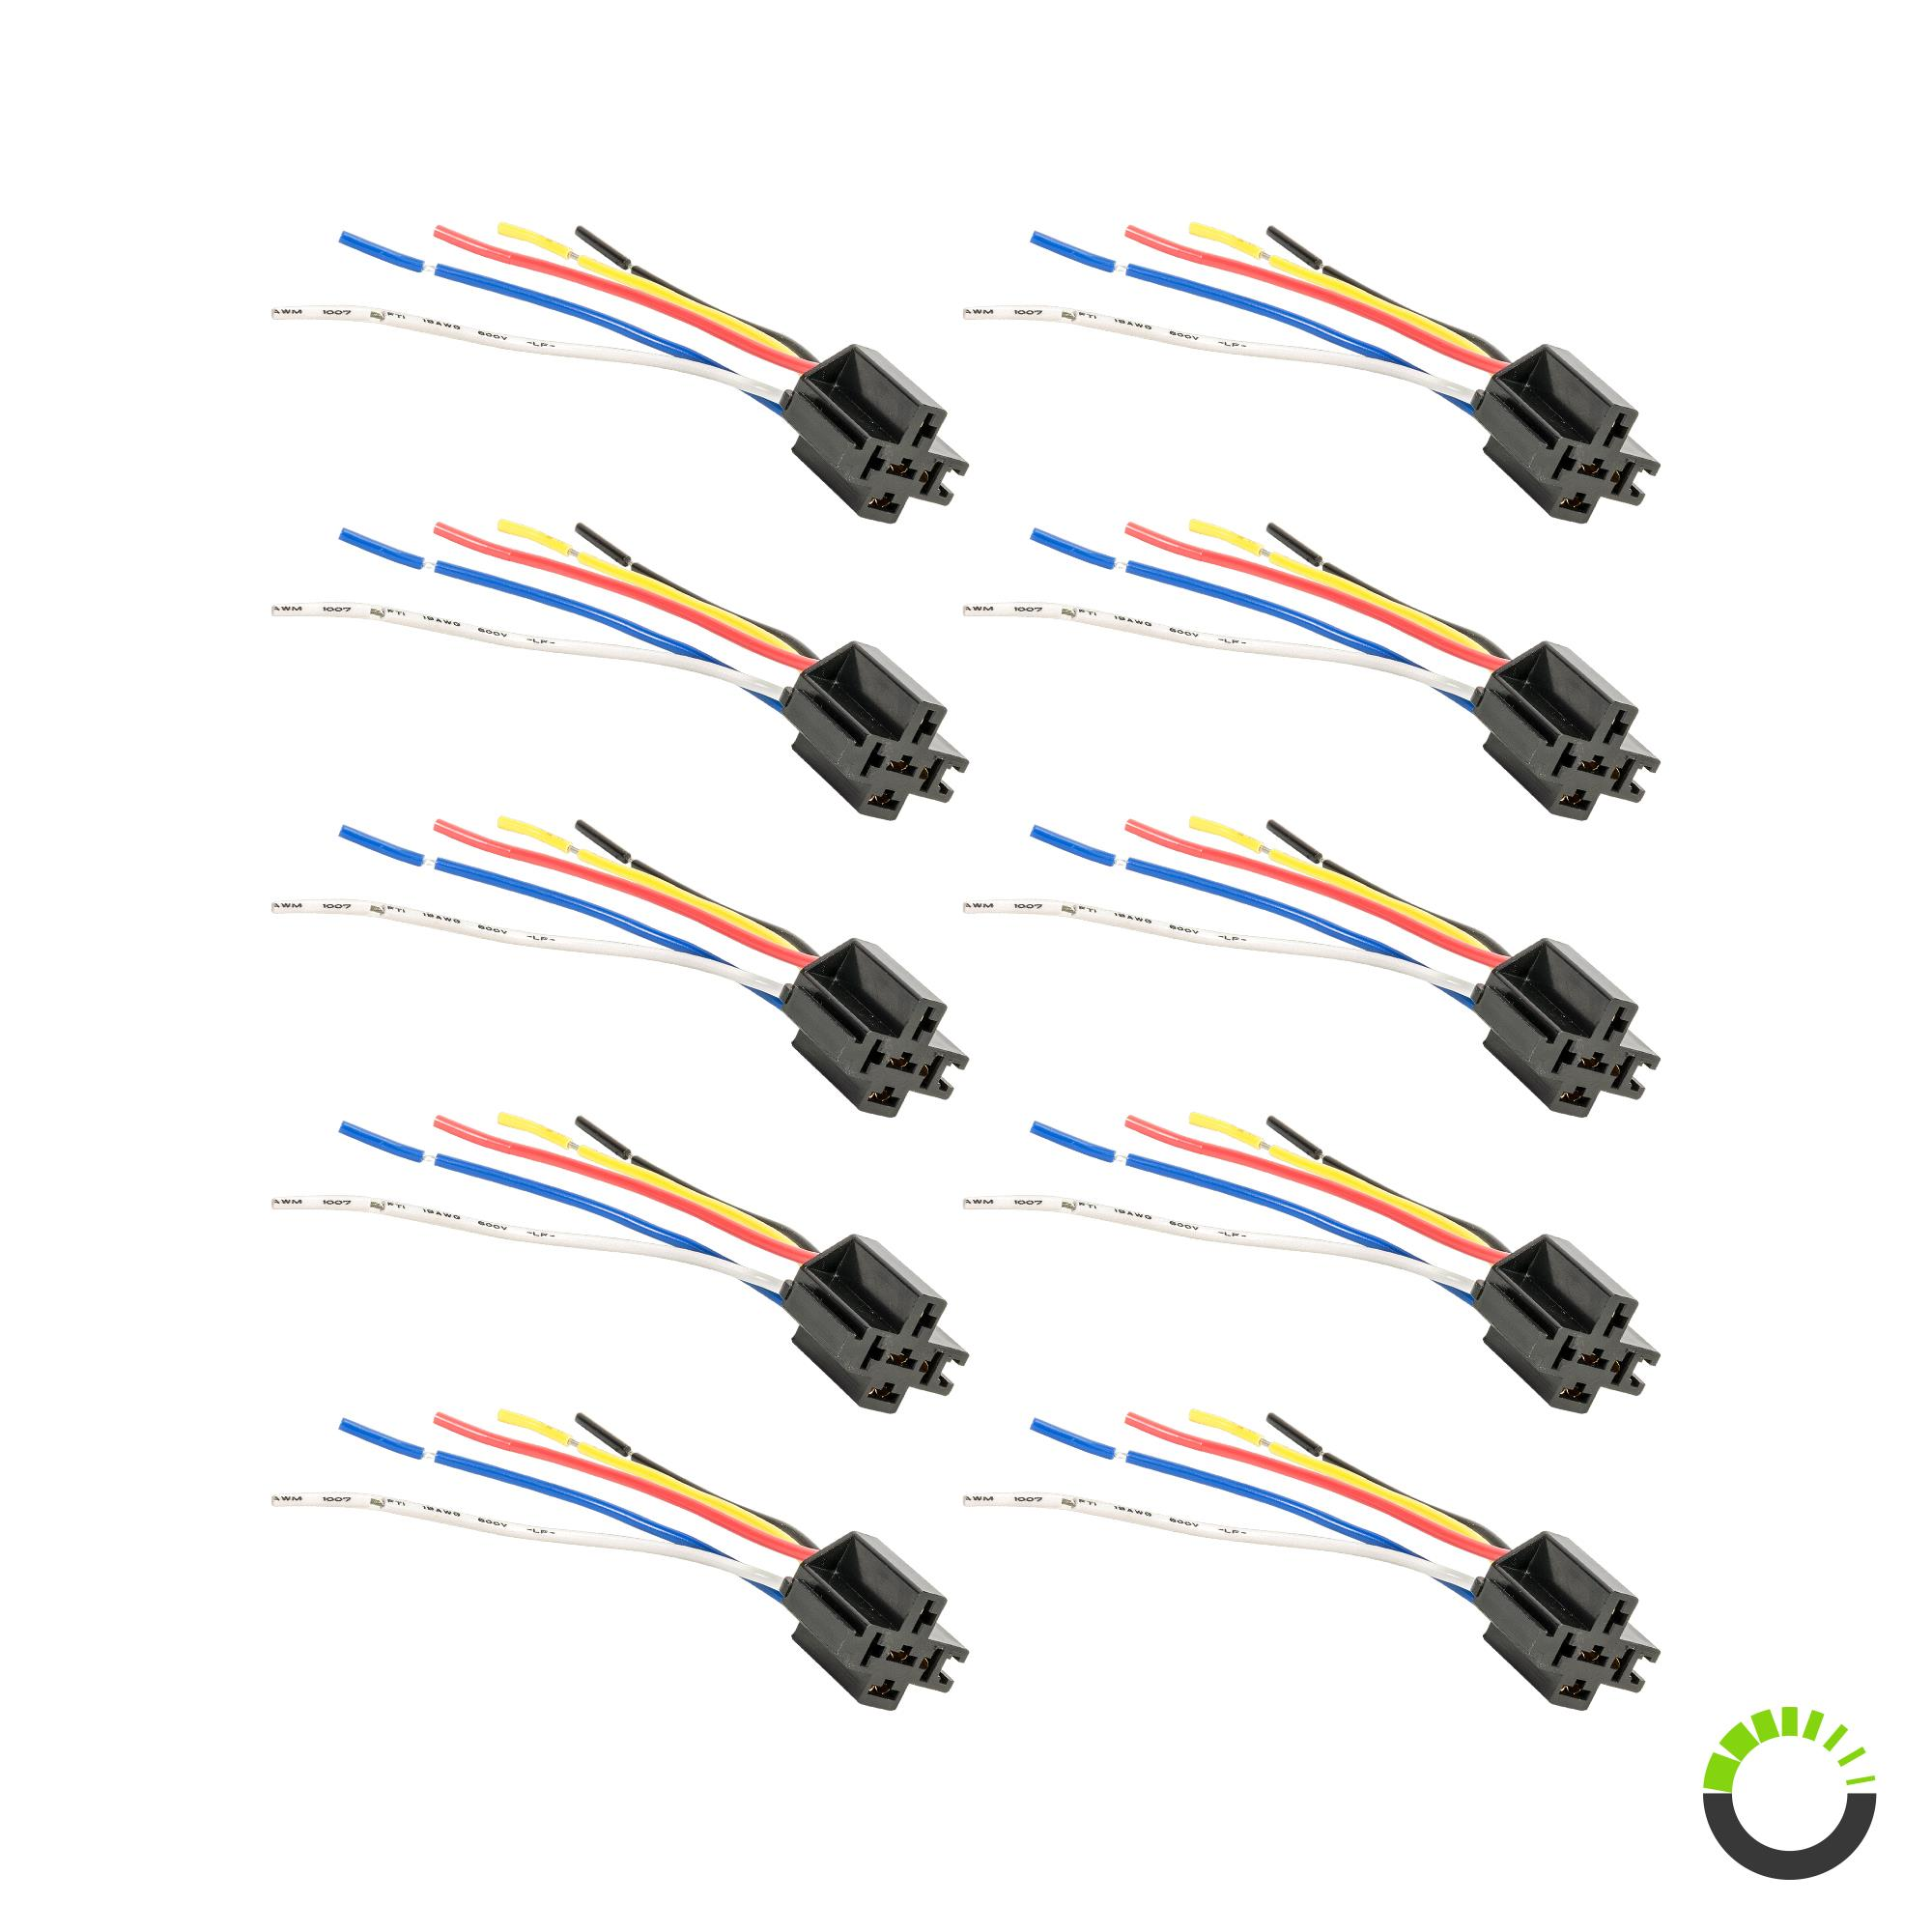 Ols Bosch Style 5 Pin Spdt Interlocking Relay Socket Harness Base With Wires Pack Of 10 Pszacceps132r X10